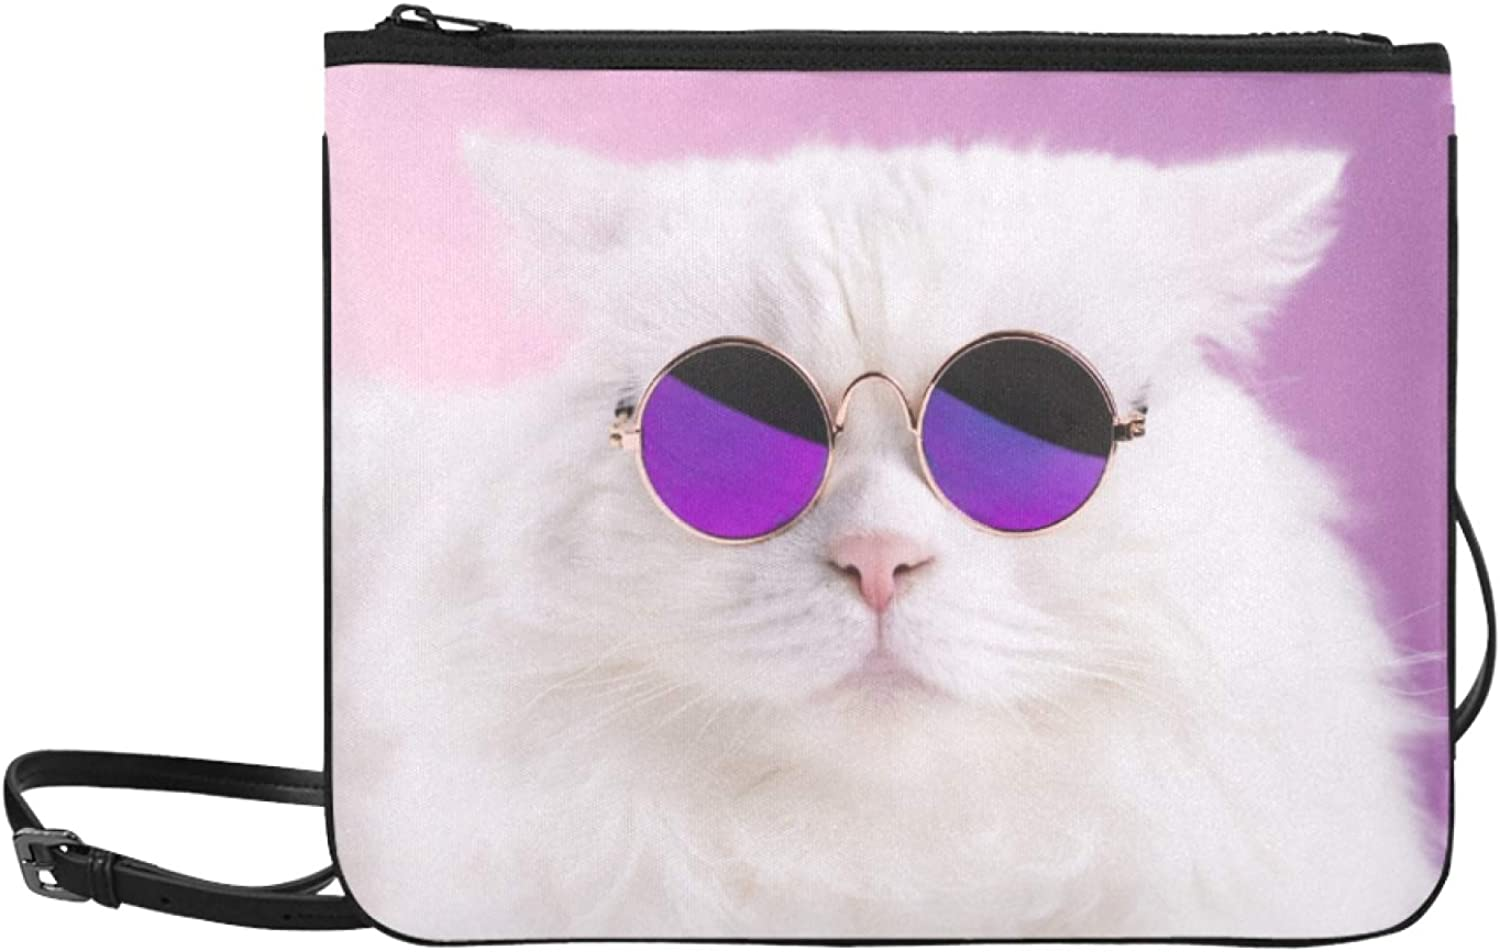 Purses And Max 86% OFF Handbags Crossbody Direct stock discount Cool S Glasses Wear Cat Adjustable